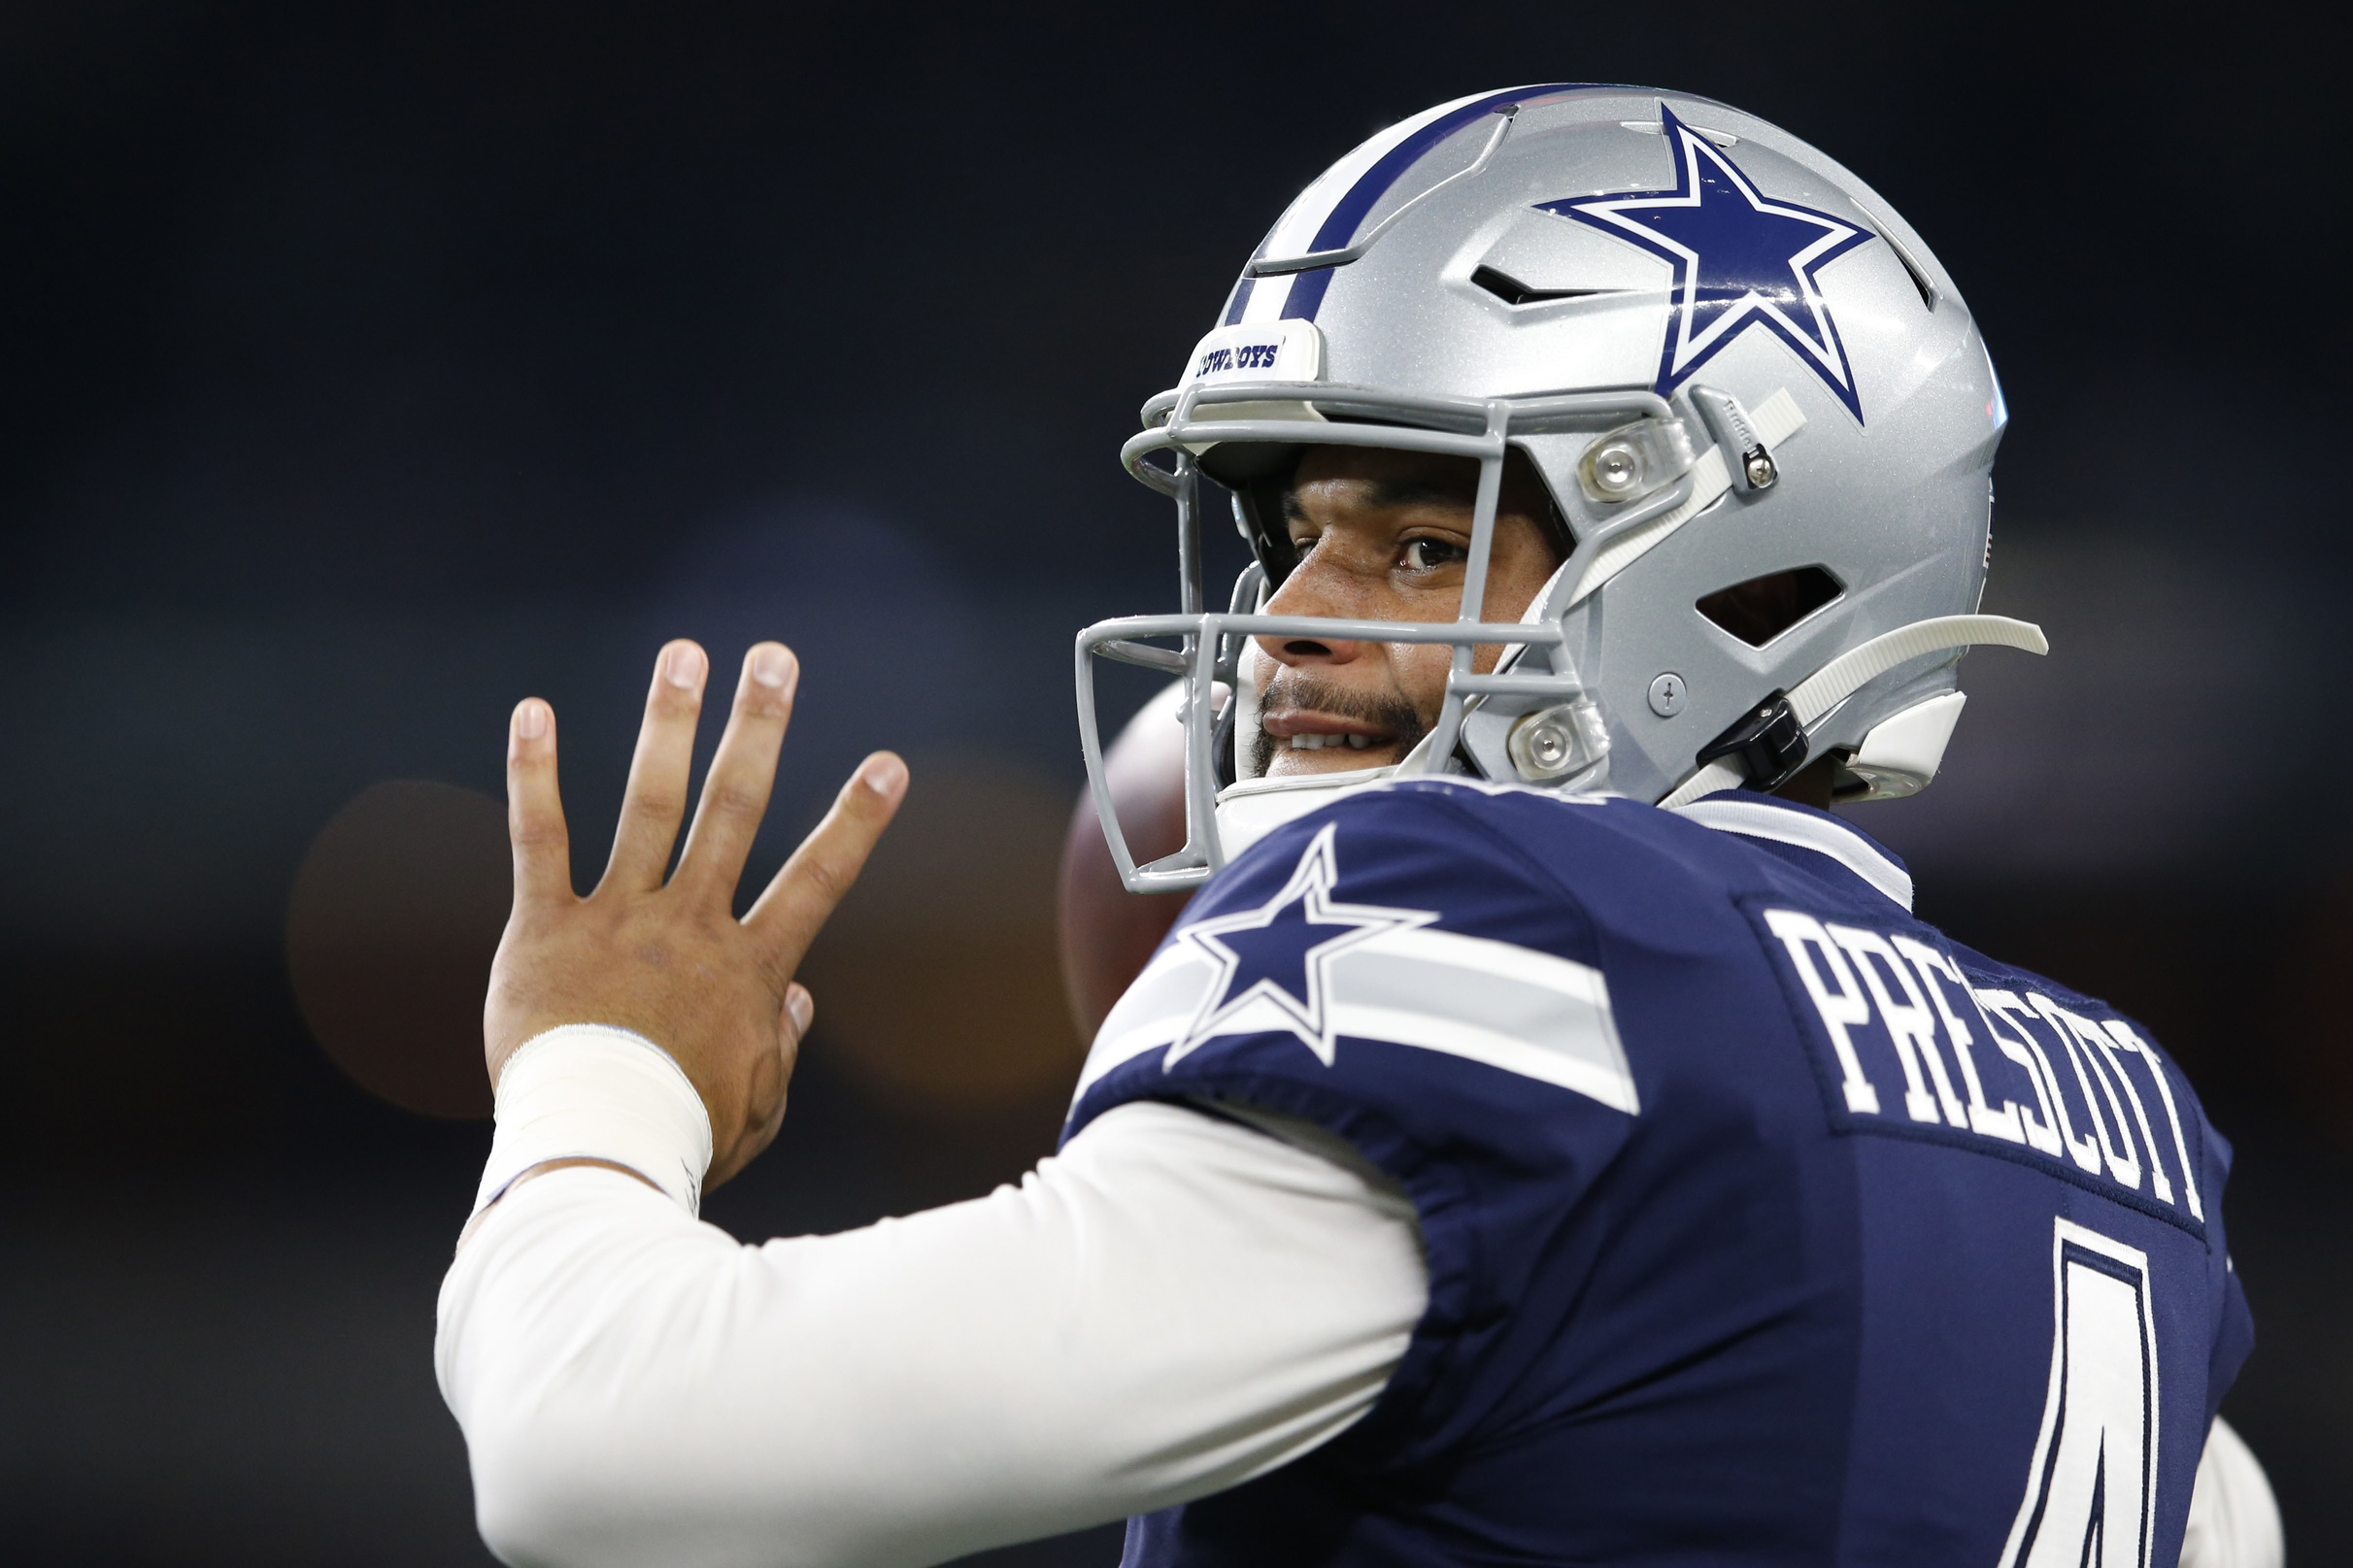 #171: Evaluating & Projecting Dak Prescott's Next Contract